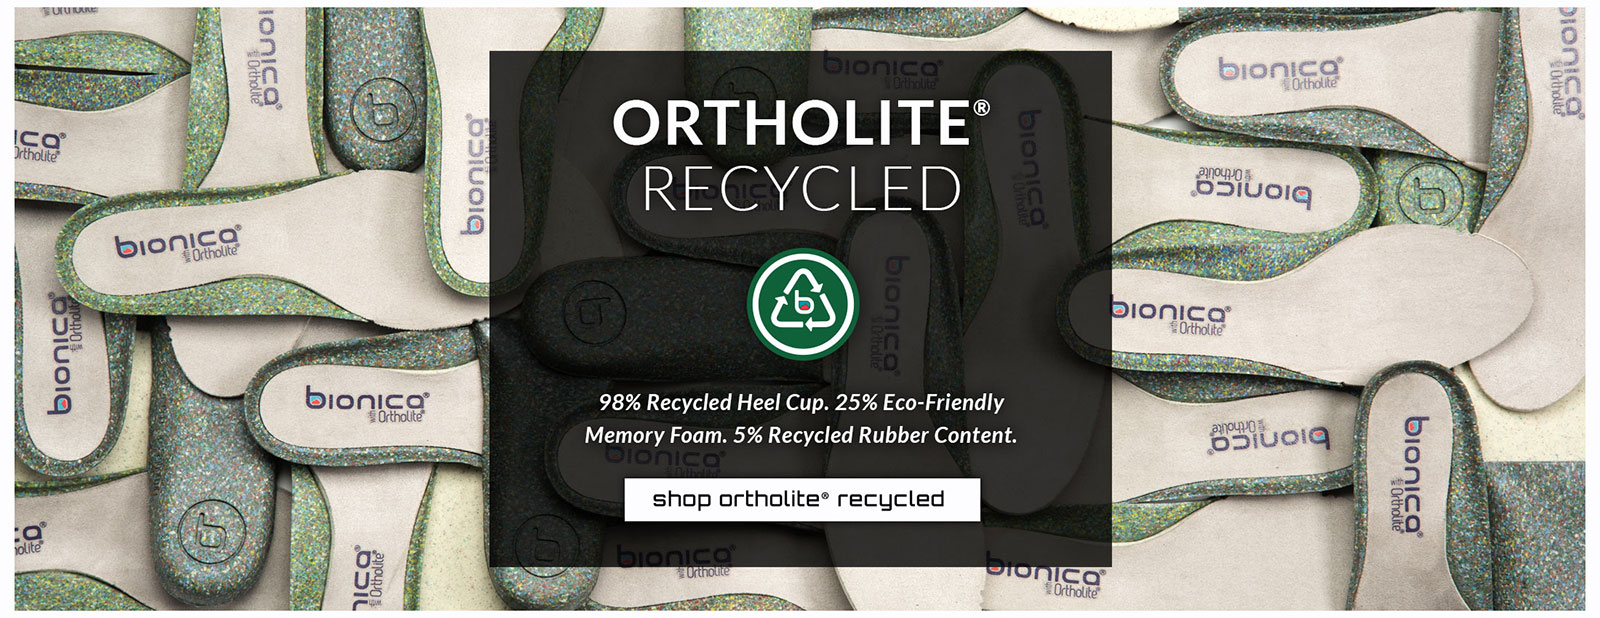 Ortholite® Recycled. 98% Recycled Heel Cup. 25% Eco-Friendly Memory Foam. 5% Recycled Rubber Content. Shop Ortholite® recycled.